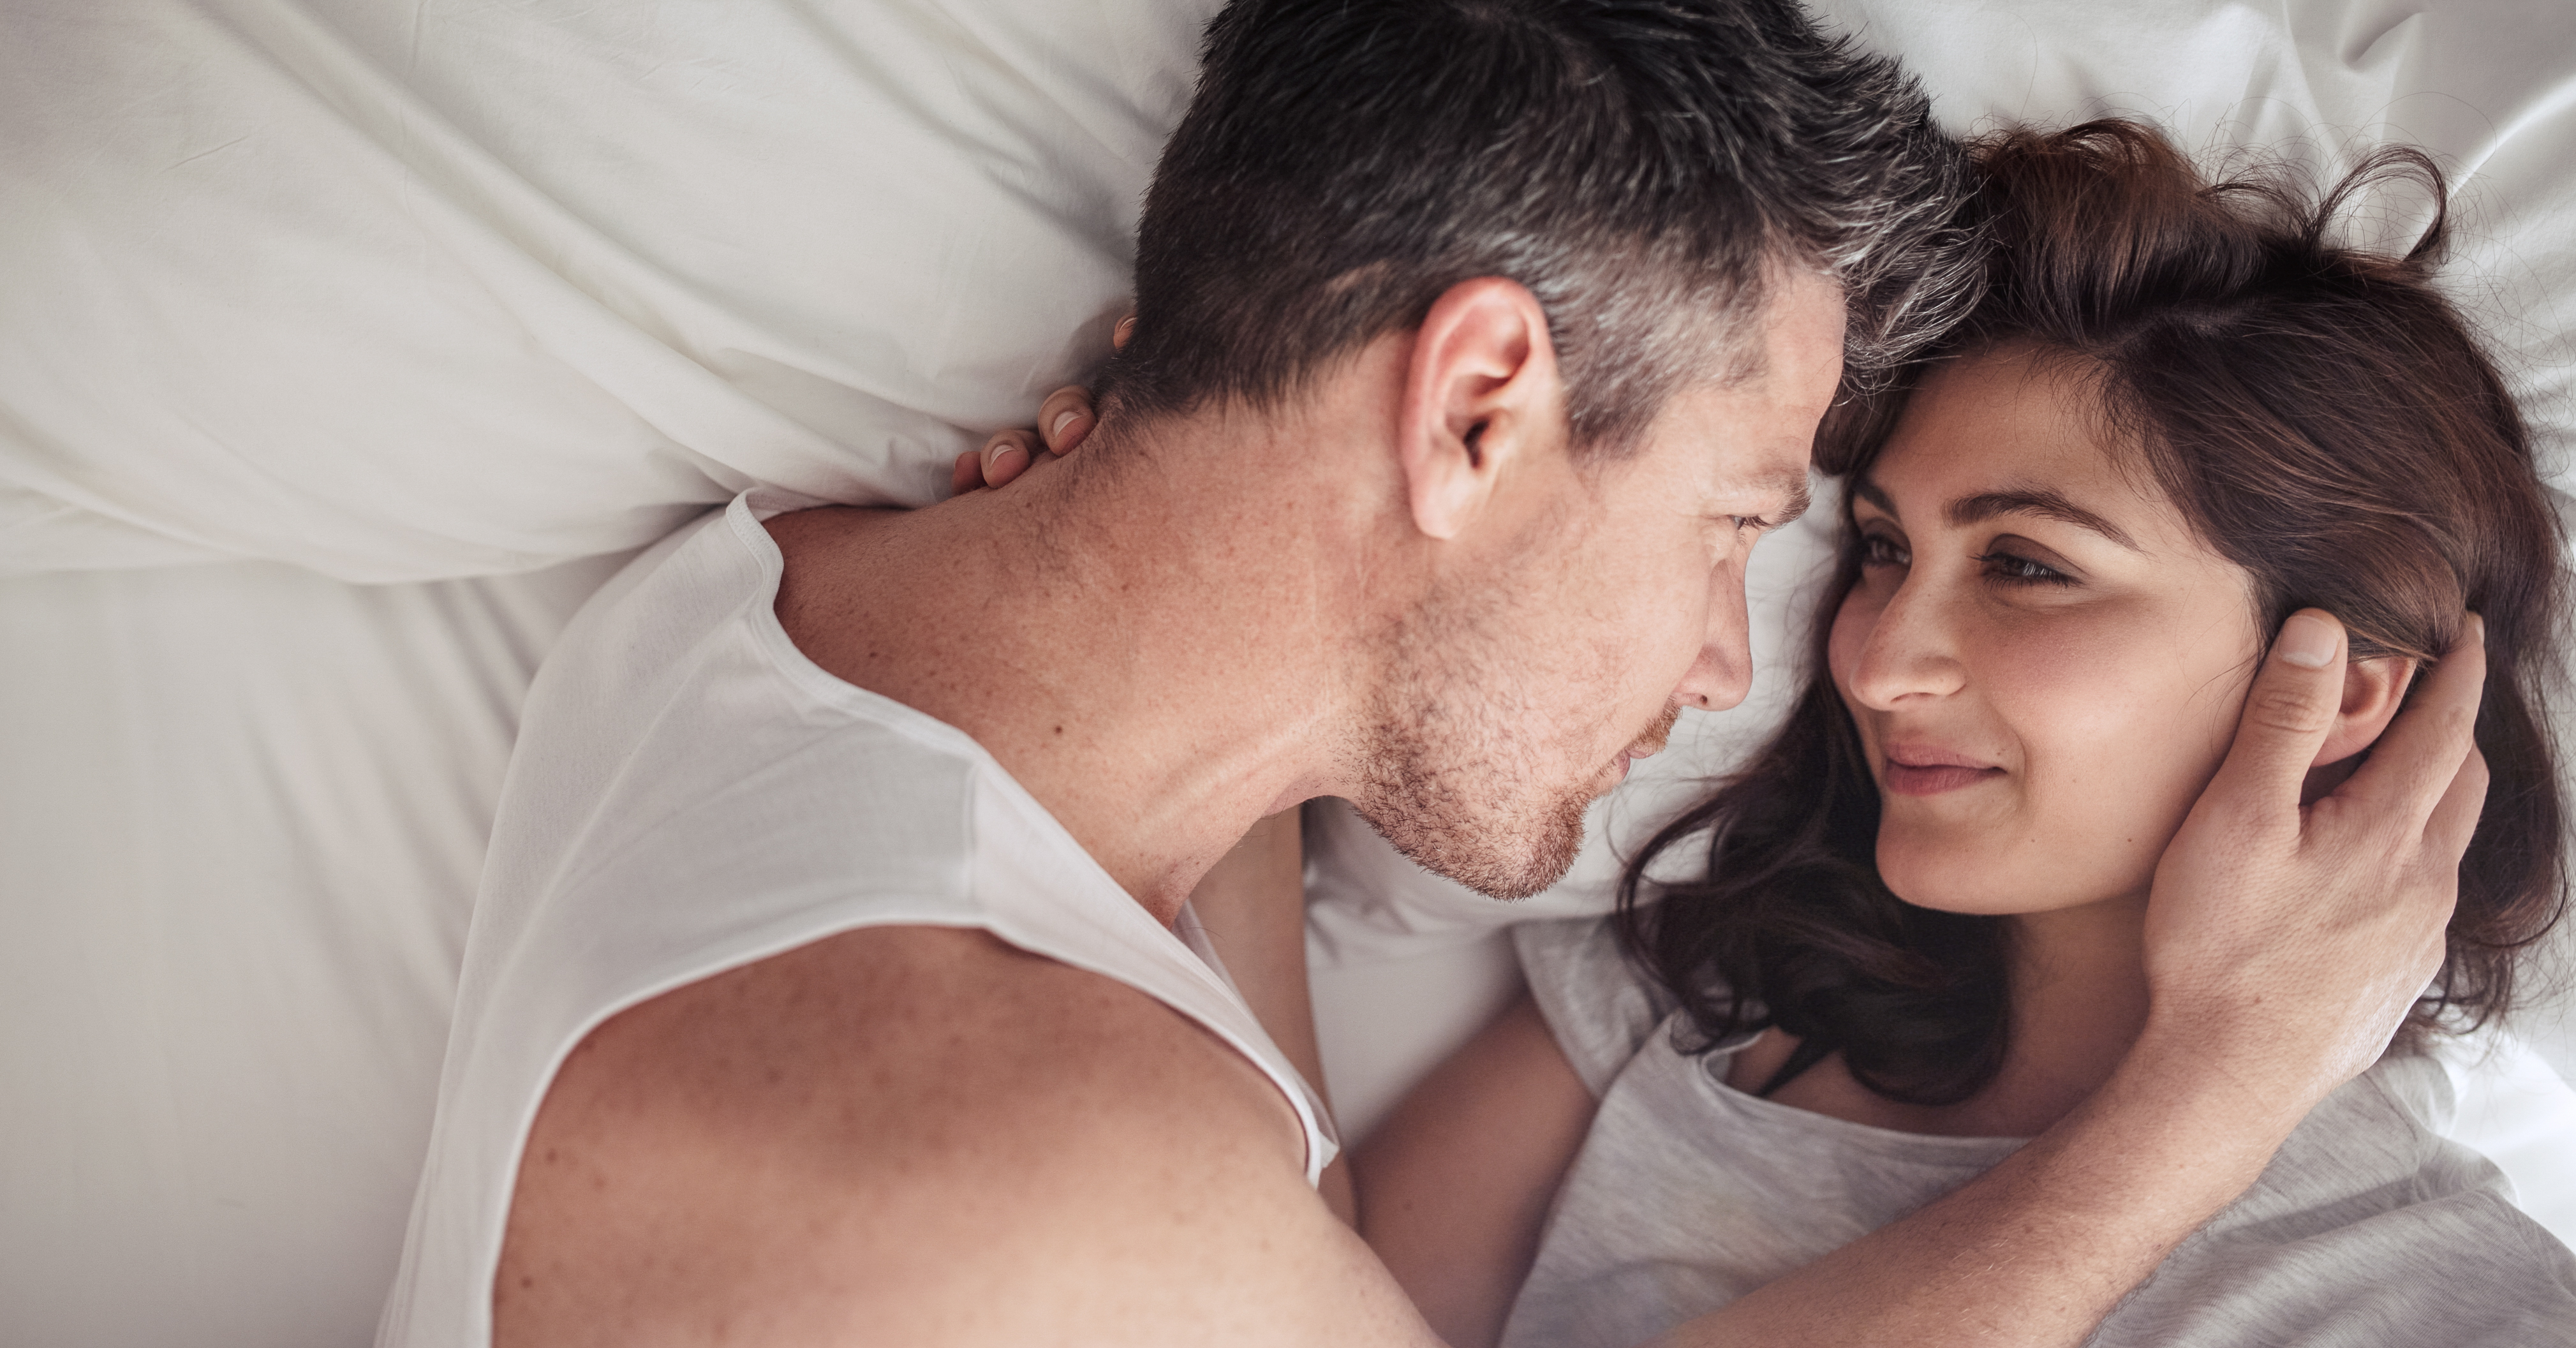 man and woman holding each other in bed, what he wants you to say